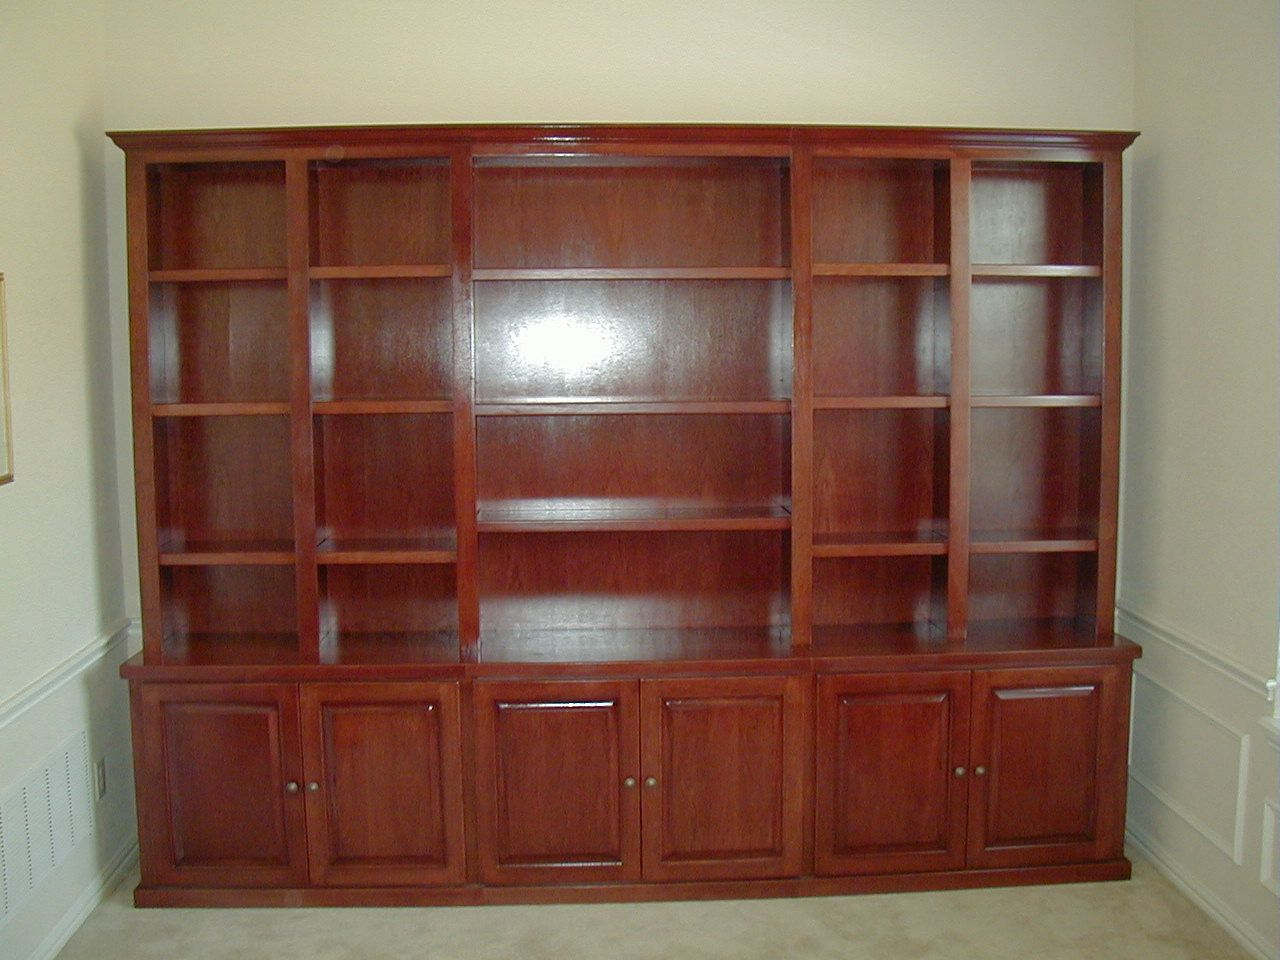 bookcases on custom chair uk built with three white in desk traditional office home large made storage tan beautiful small bookshelf colour bookcase for empty slots ideas